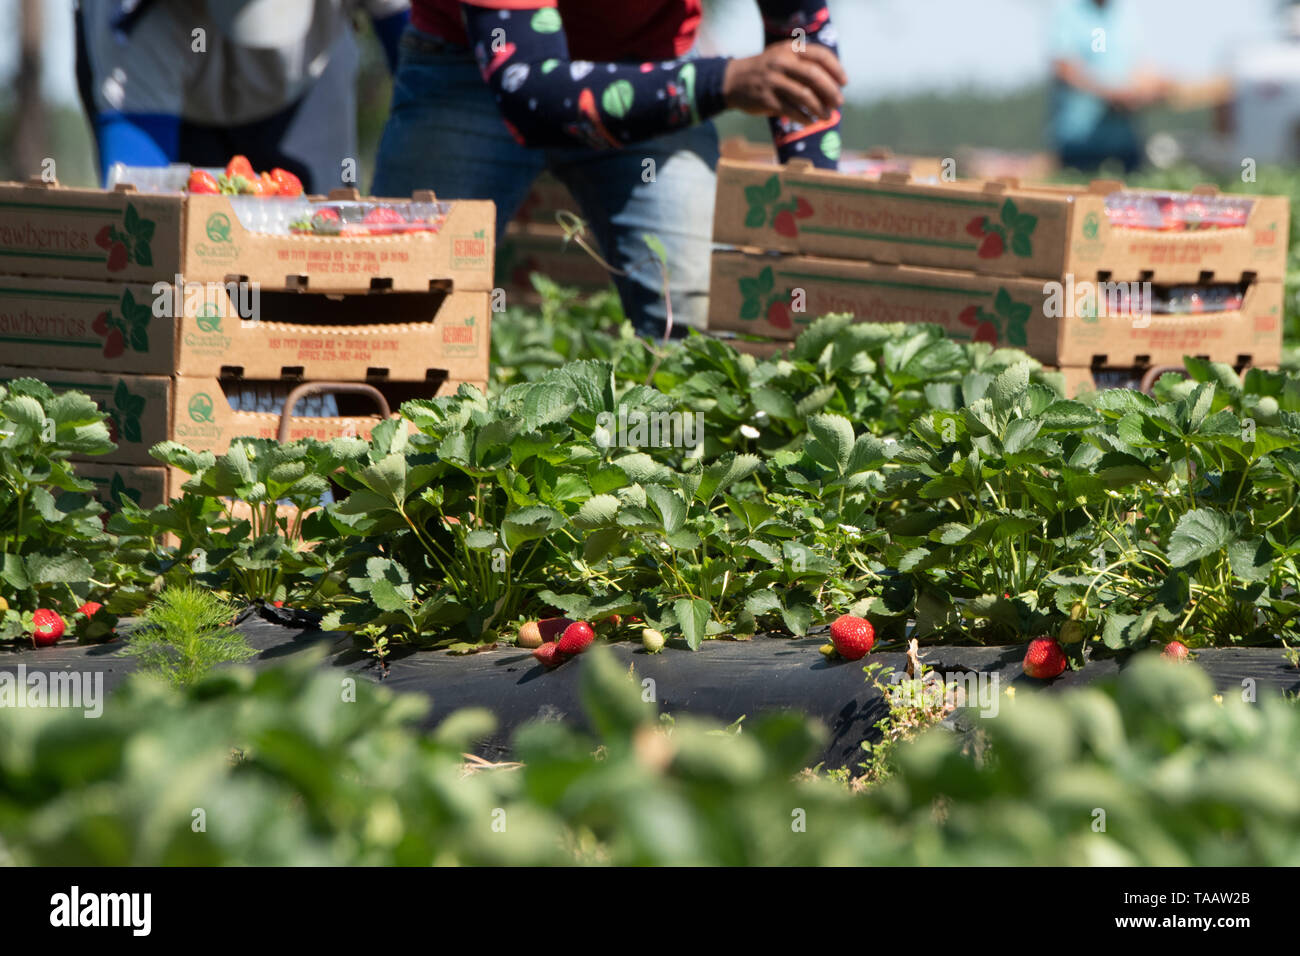 Farm workers pick and pack strawberries at Lewis Taylor Farms using legal Mexican labor May 7, 2019 in Fort Valley, Georgia. A, on May 7, 2019. Farms rely on seasonal labor using the H-2A visa program for temporary agricultural workers often called the guest worker program. - Stock Image